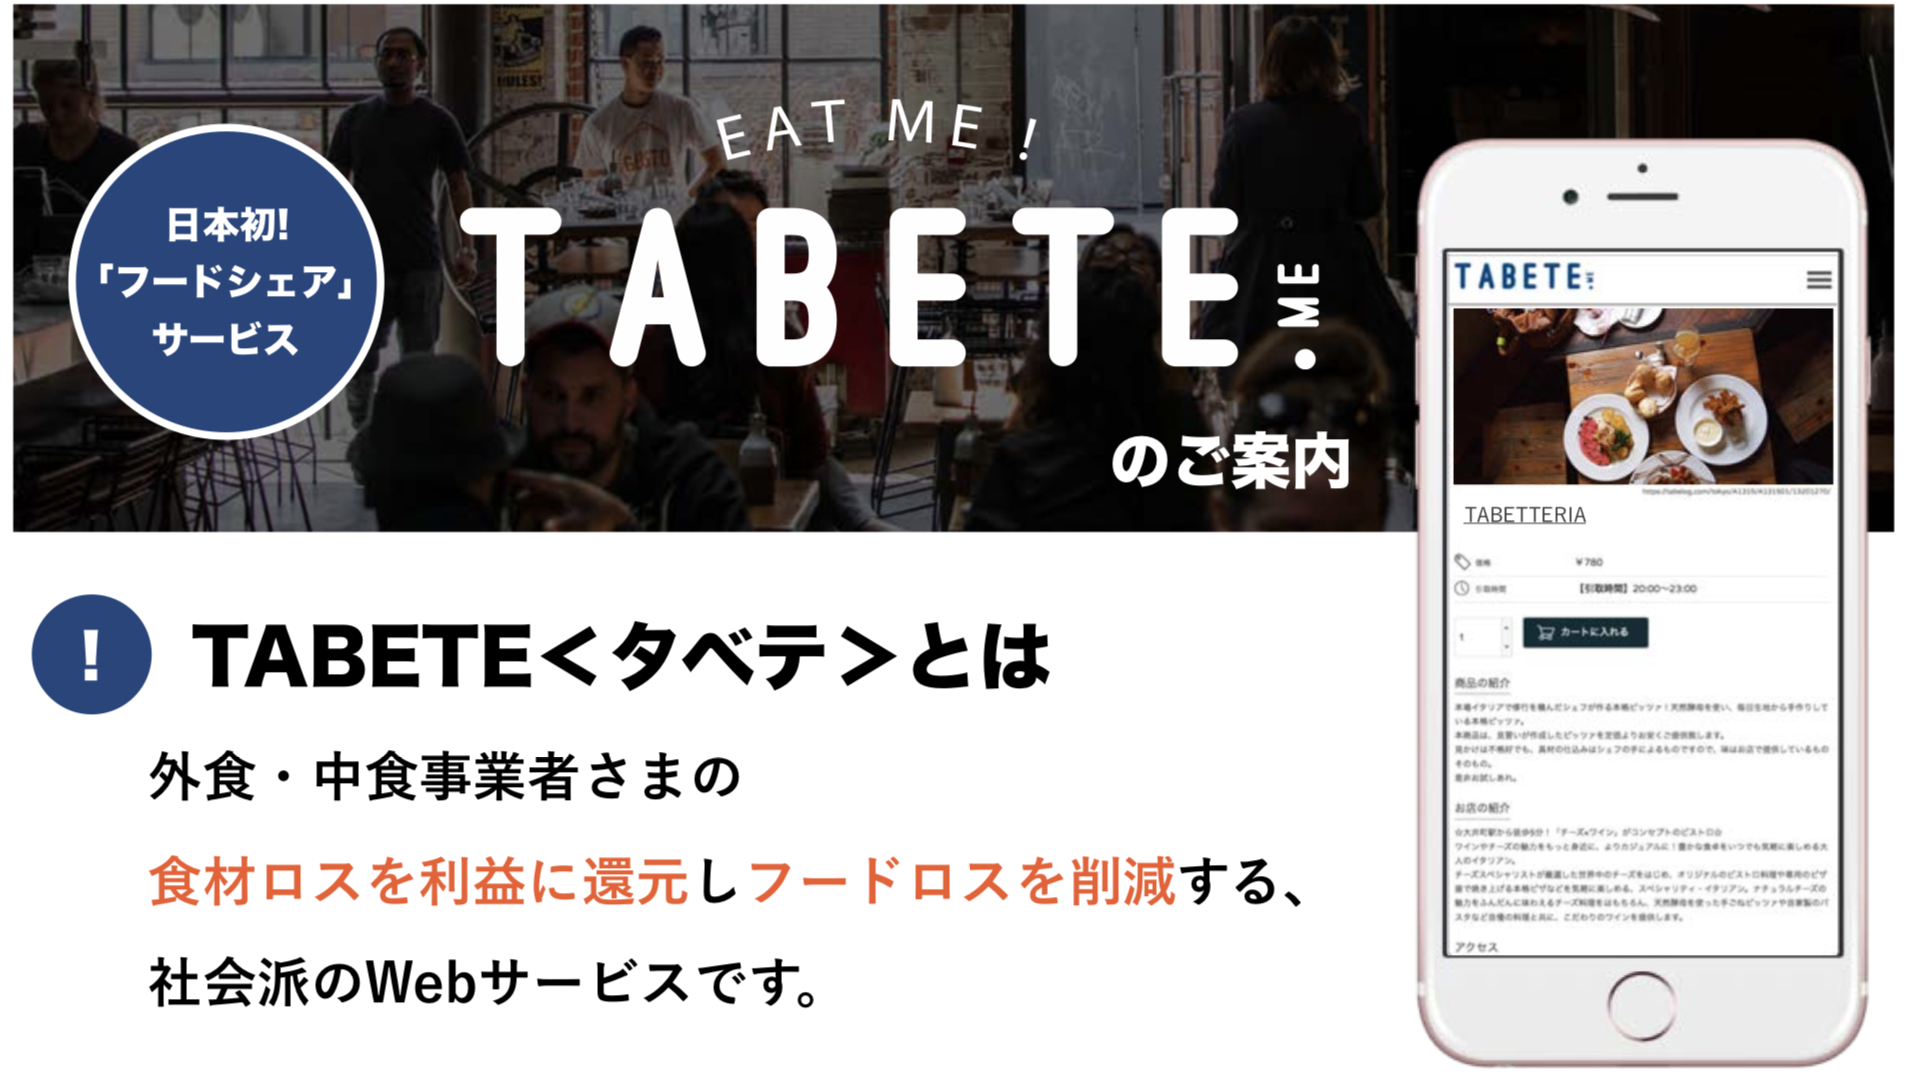 TABETE のご案内(公式)